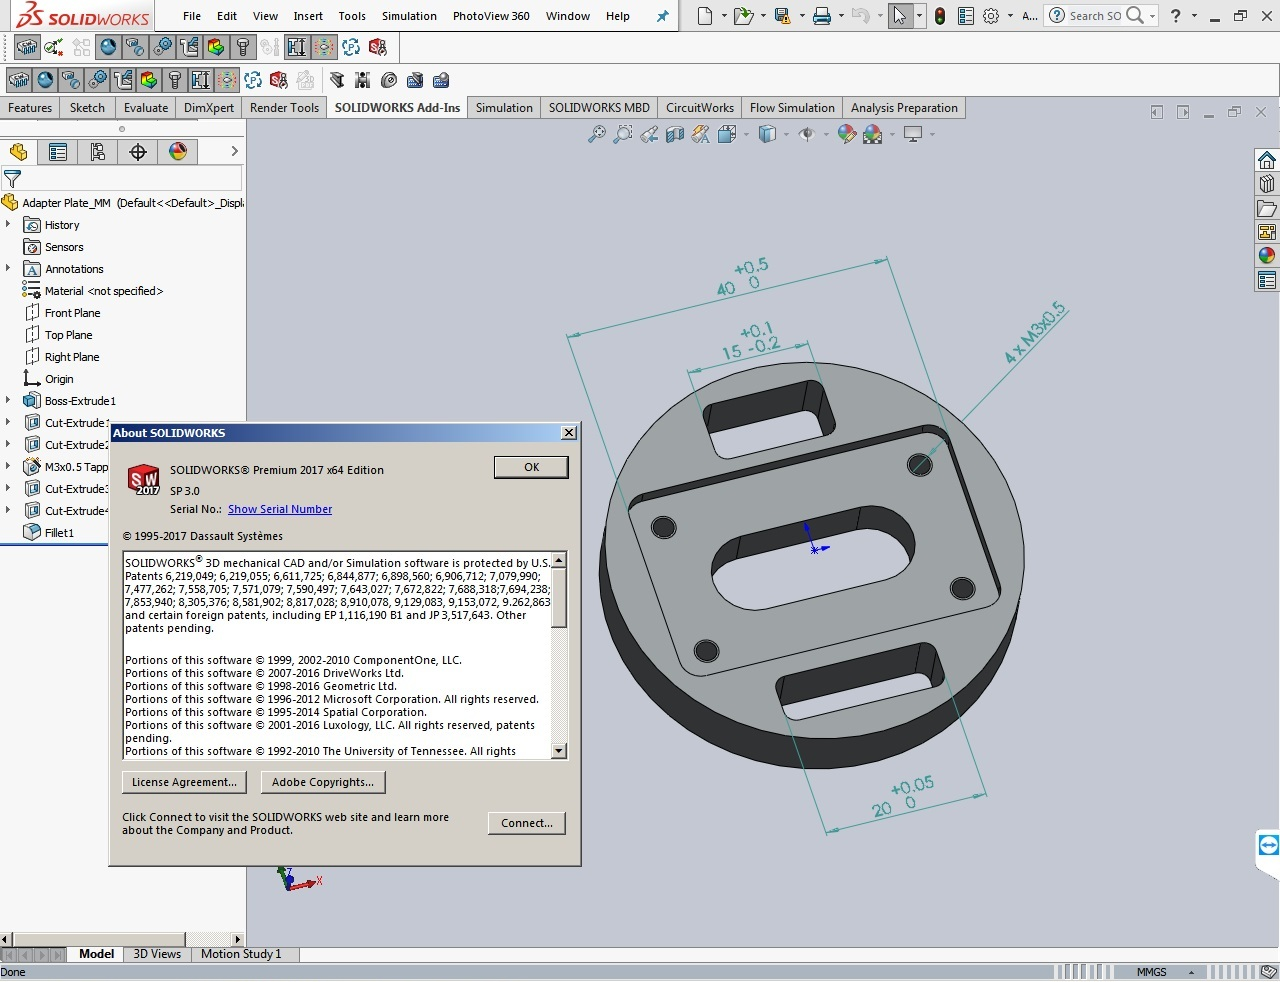 Designing with SolidWorks 2017 SP3 Full 64bit